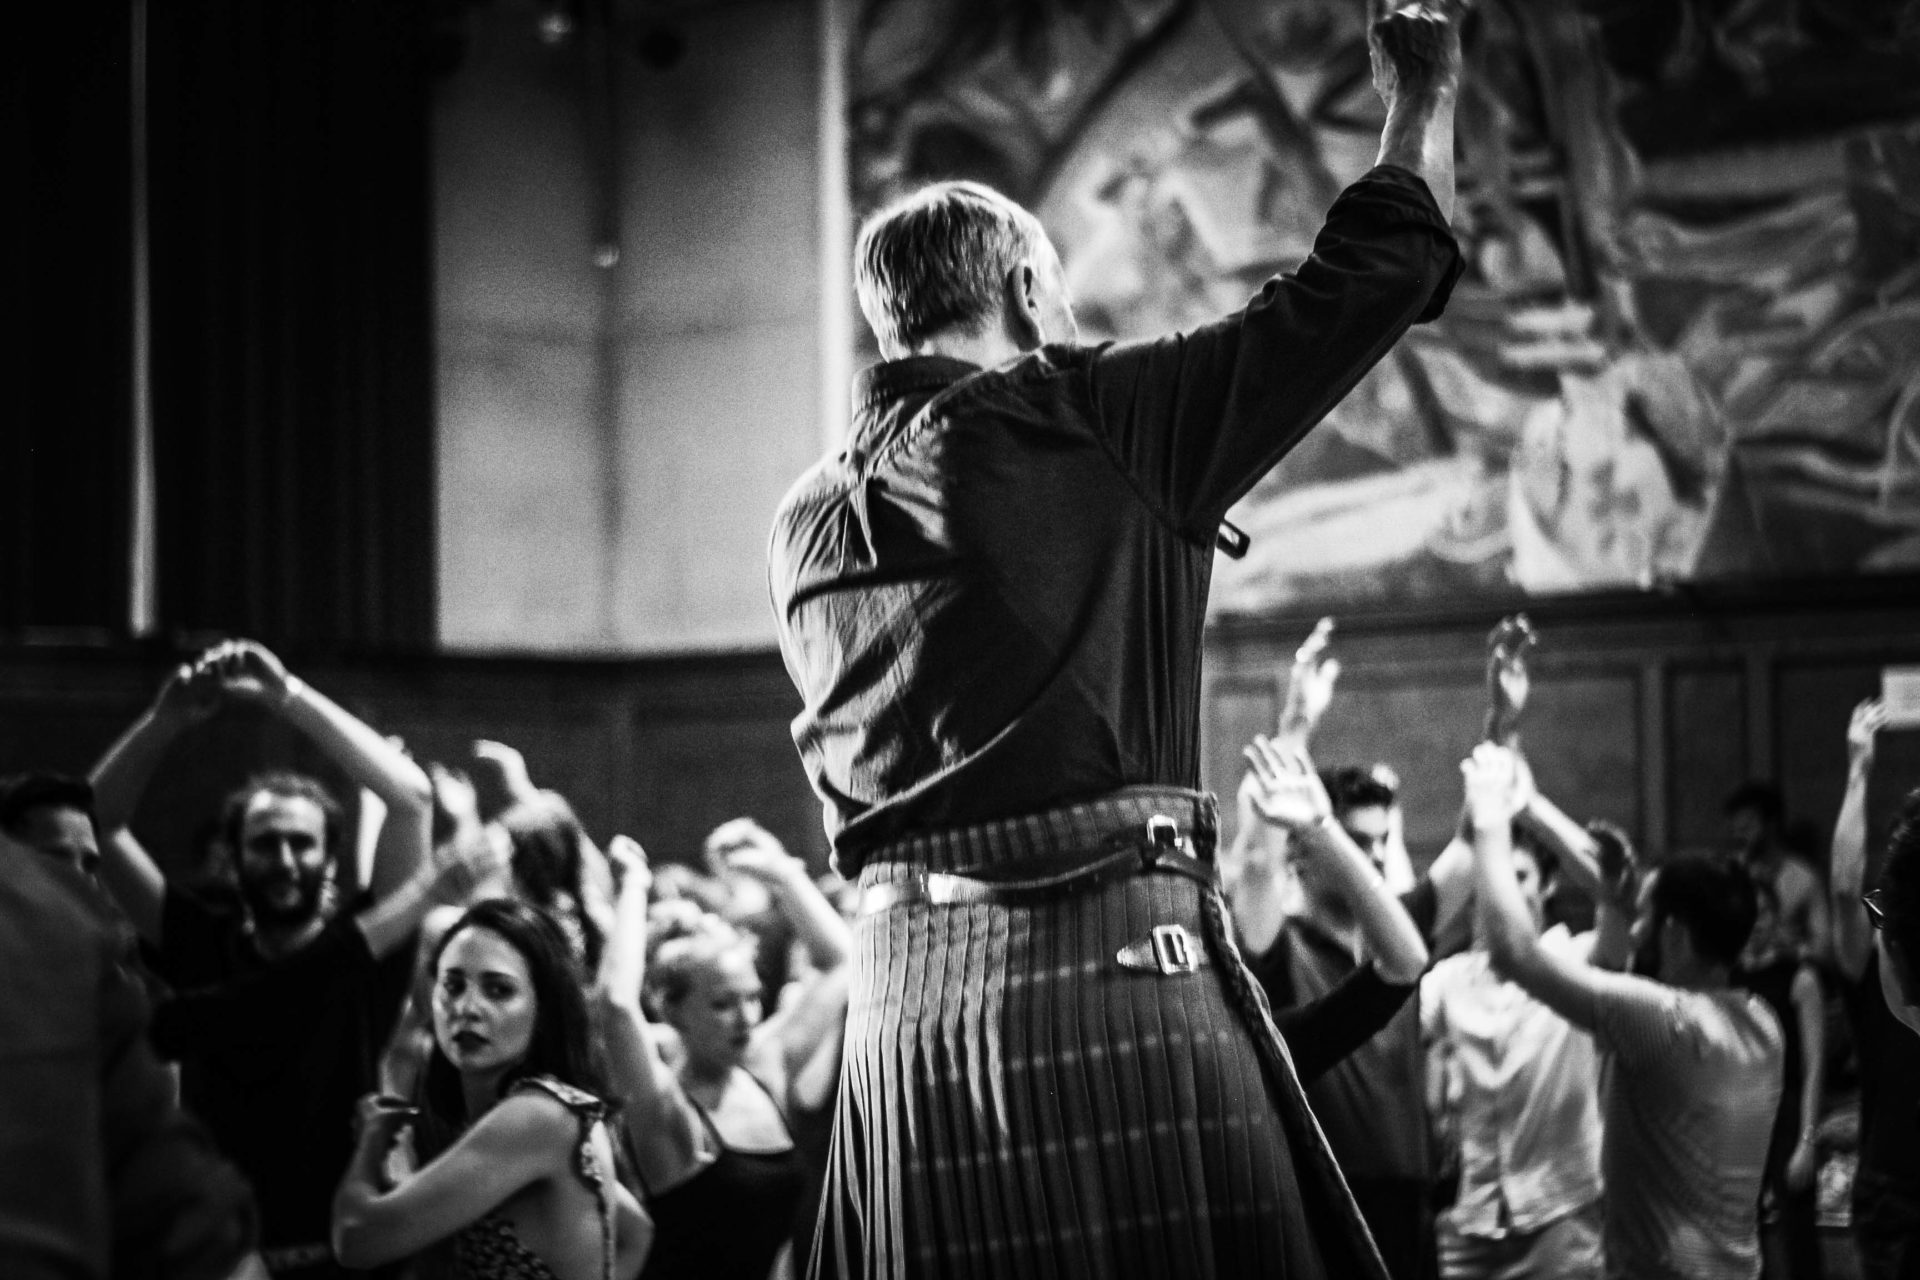 A man giving ceilidh instructions